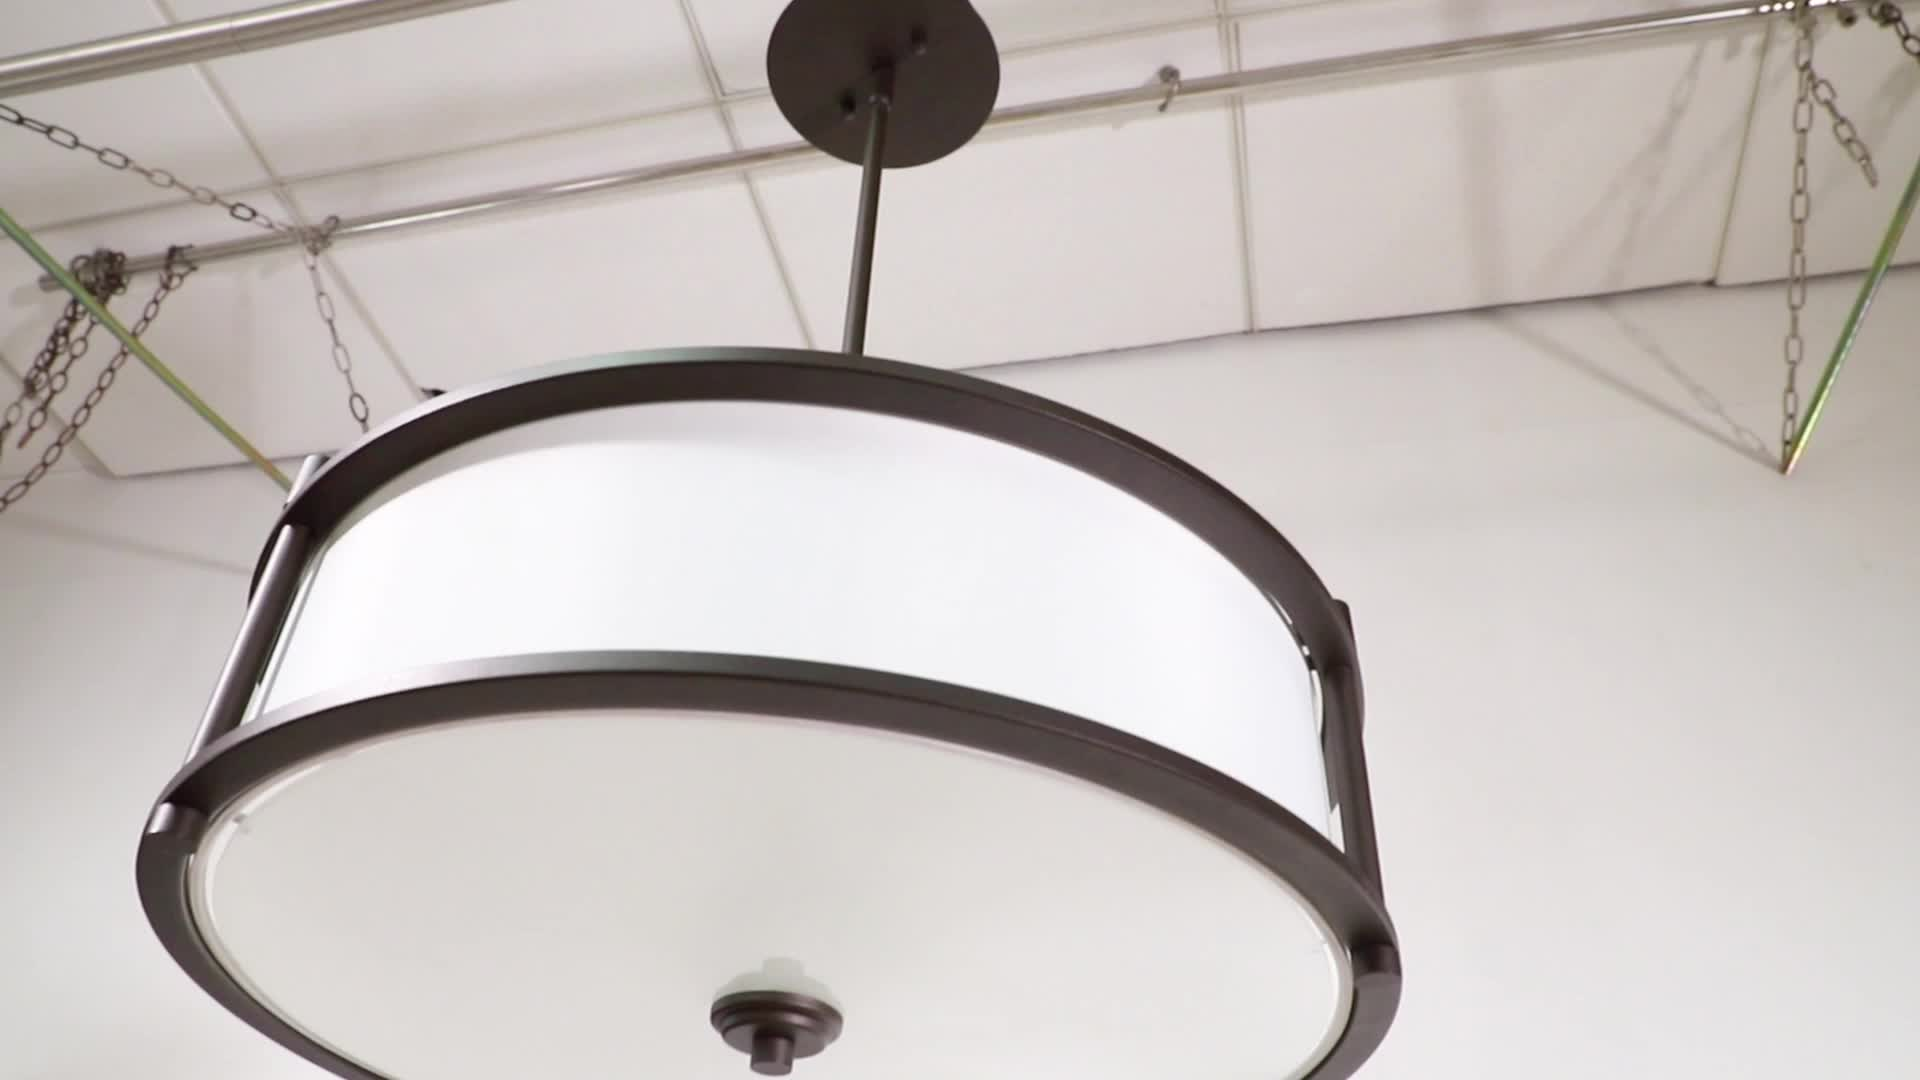 Home Decorative 3 Light Pendant Lighting 18 inch Drum Dark Bronze Pendant Light with Fabric Shade and Glass Diffuser